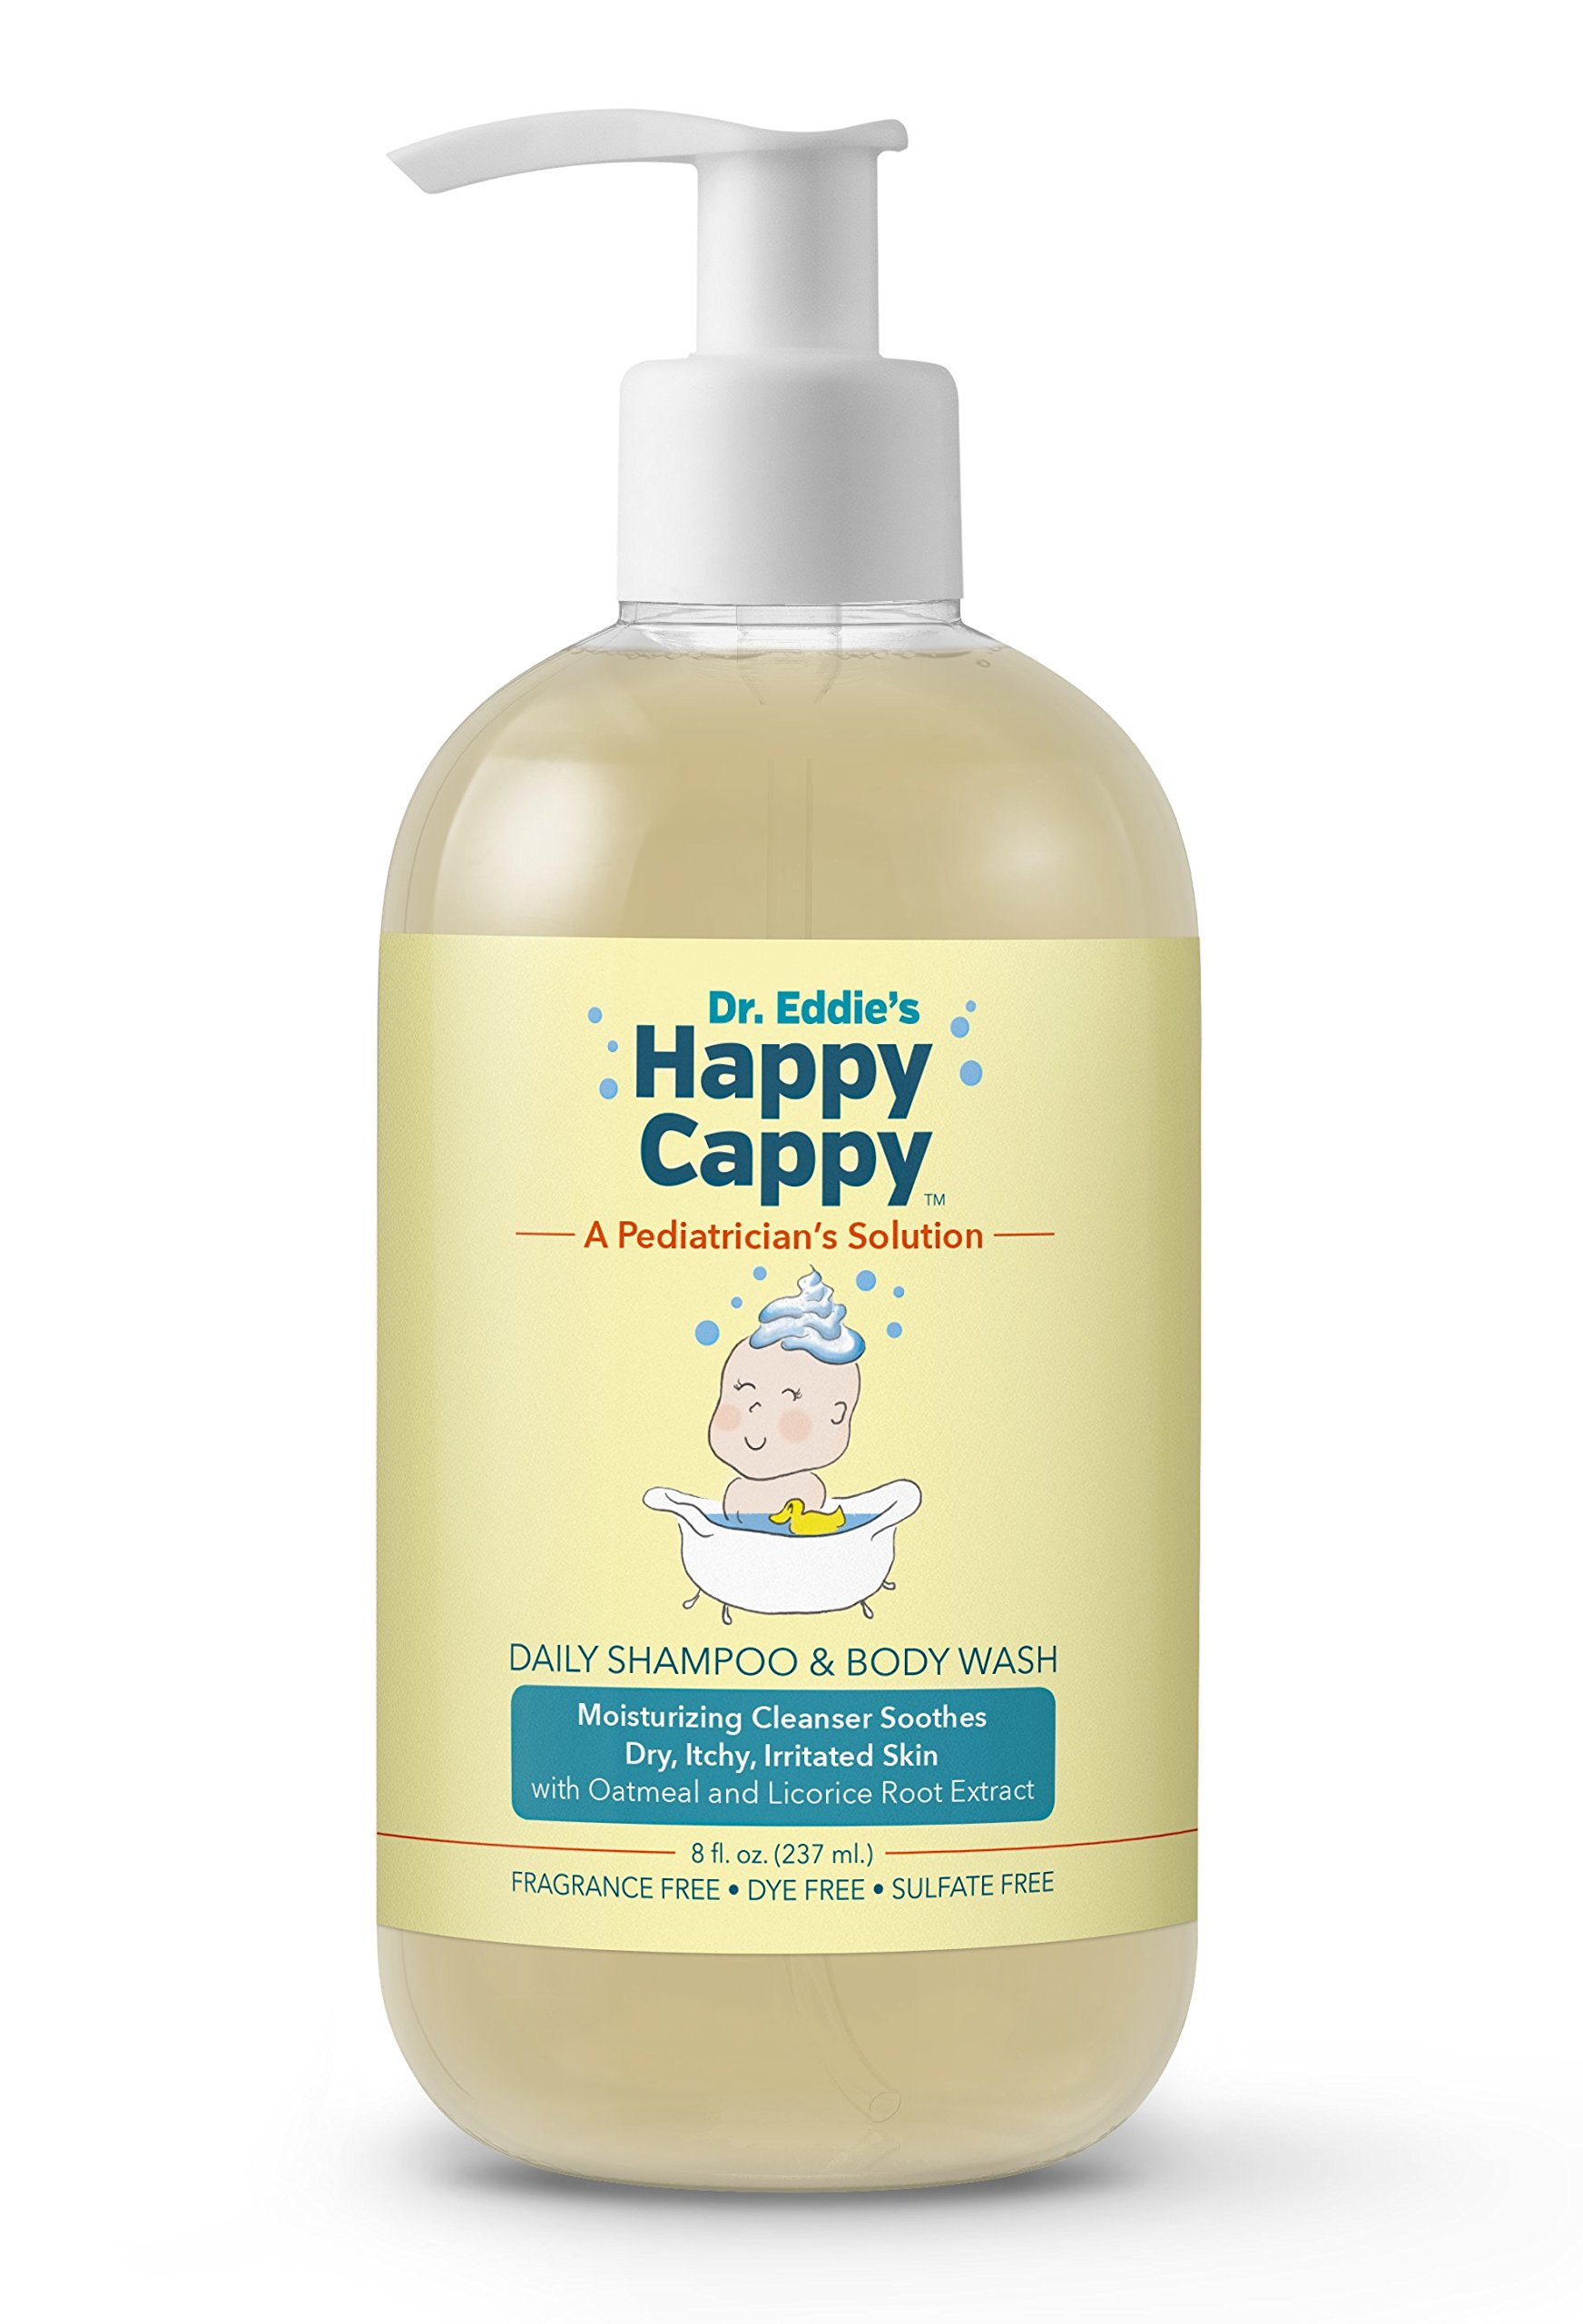 Dr. Eddie's Happy Cappy Daily Shampoo & Body Wash for Children, Fragrance Free, Moisturizing Cleanser Soothes Sensitive Scalps and Skin, 8 oz